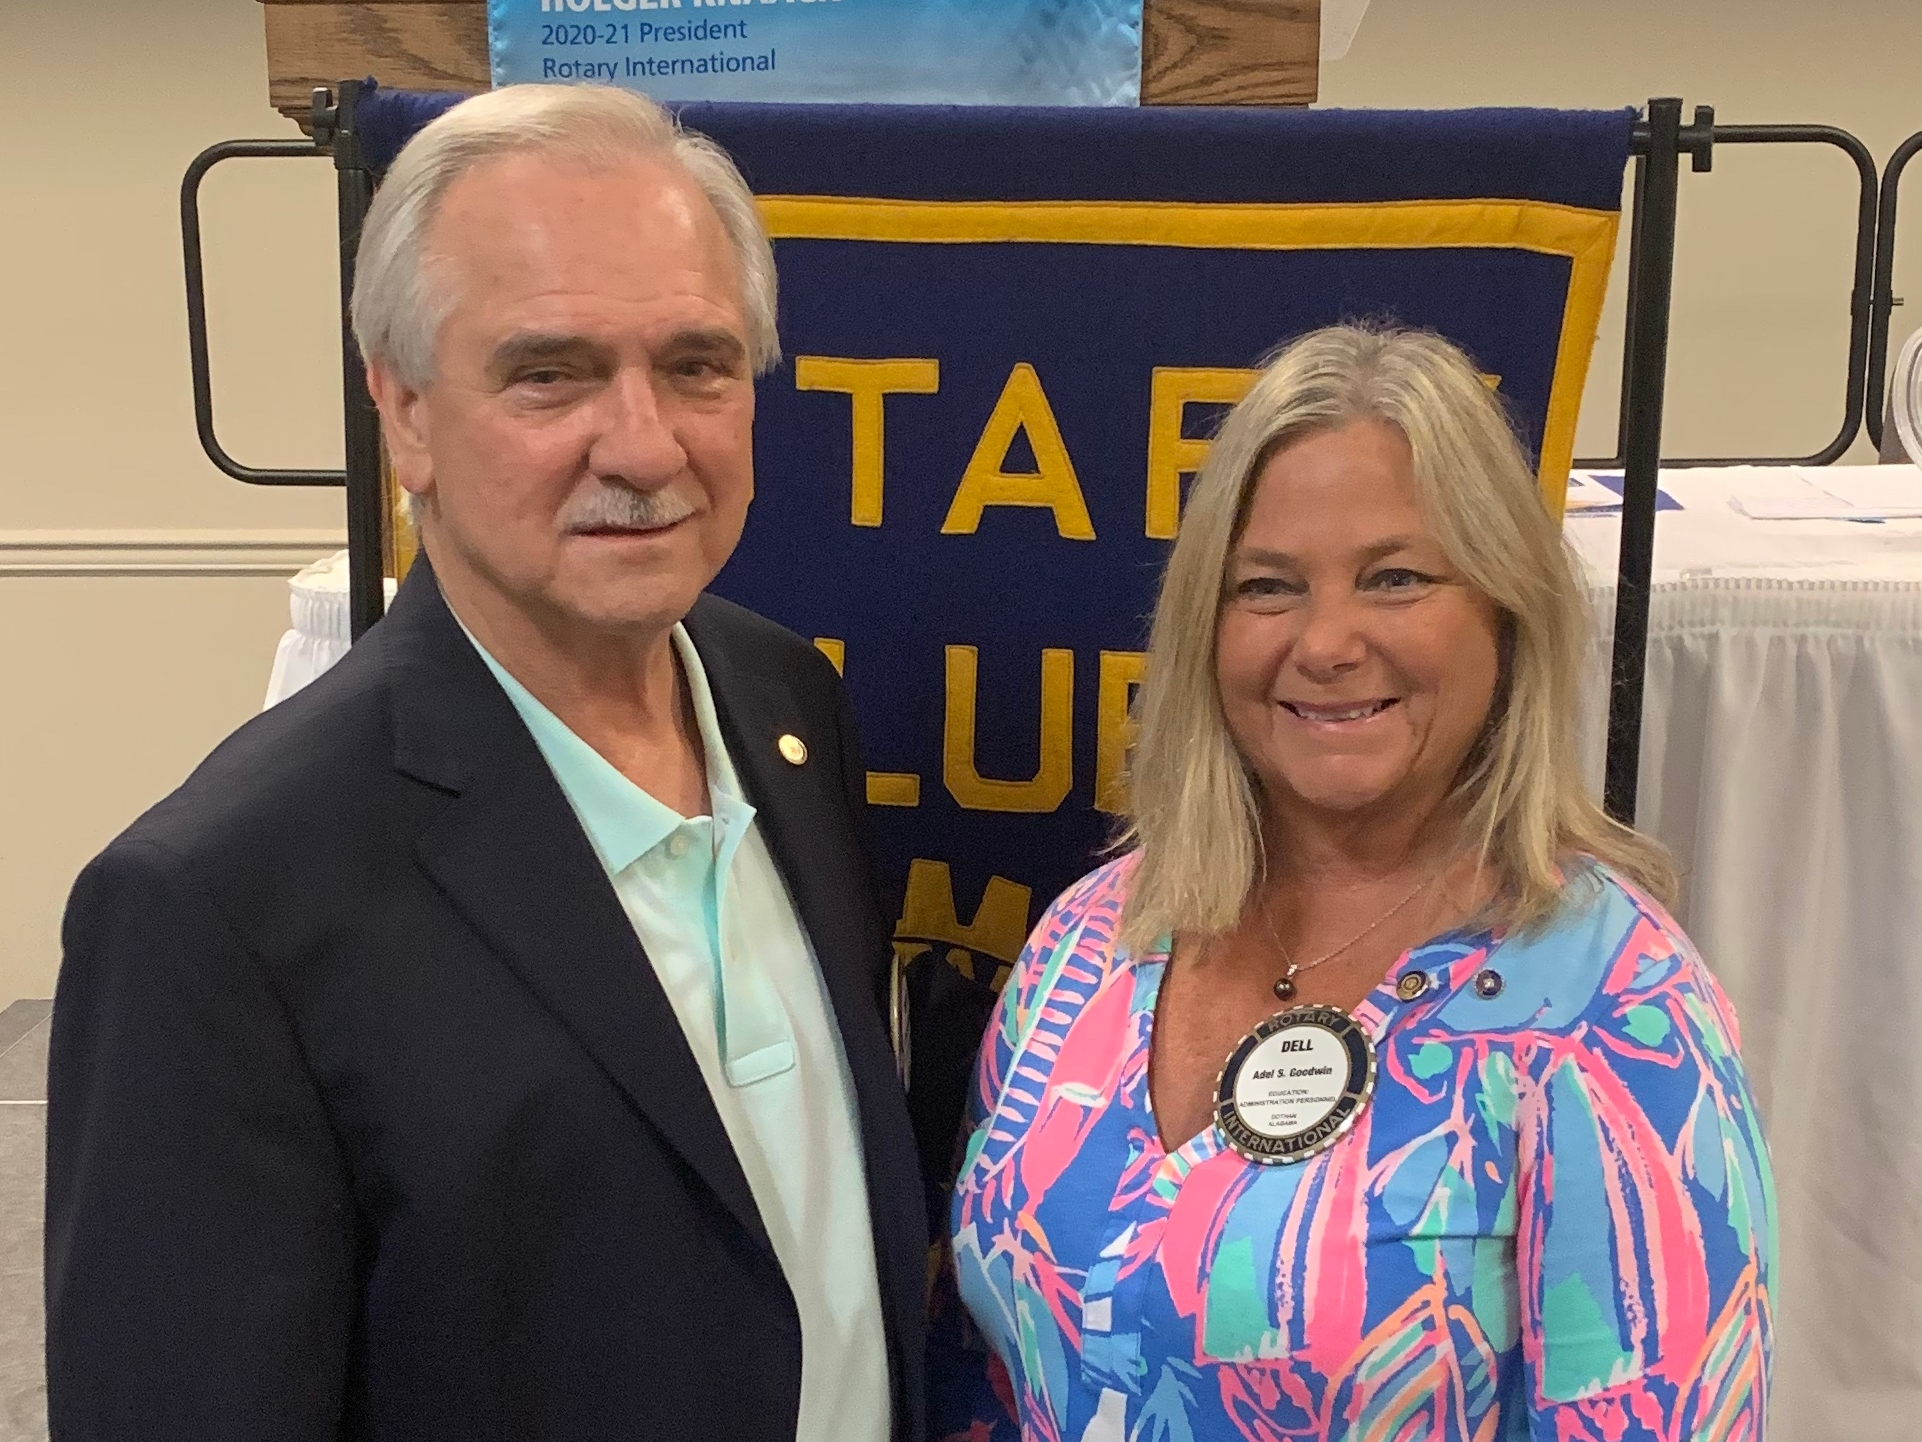 Dothan City Schools Calendar 2022 2023.Two From Dothan Rotary Club In Line To Serve As Rotary District Governors